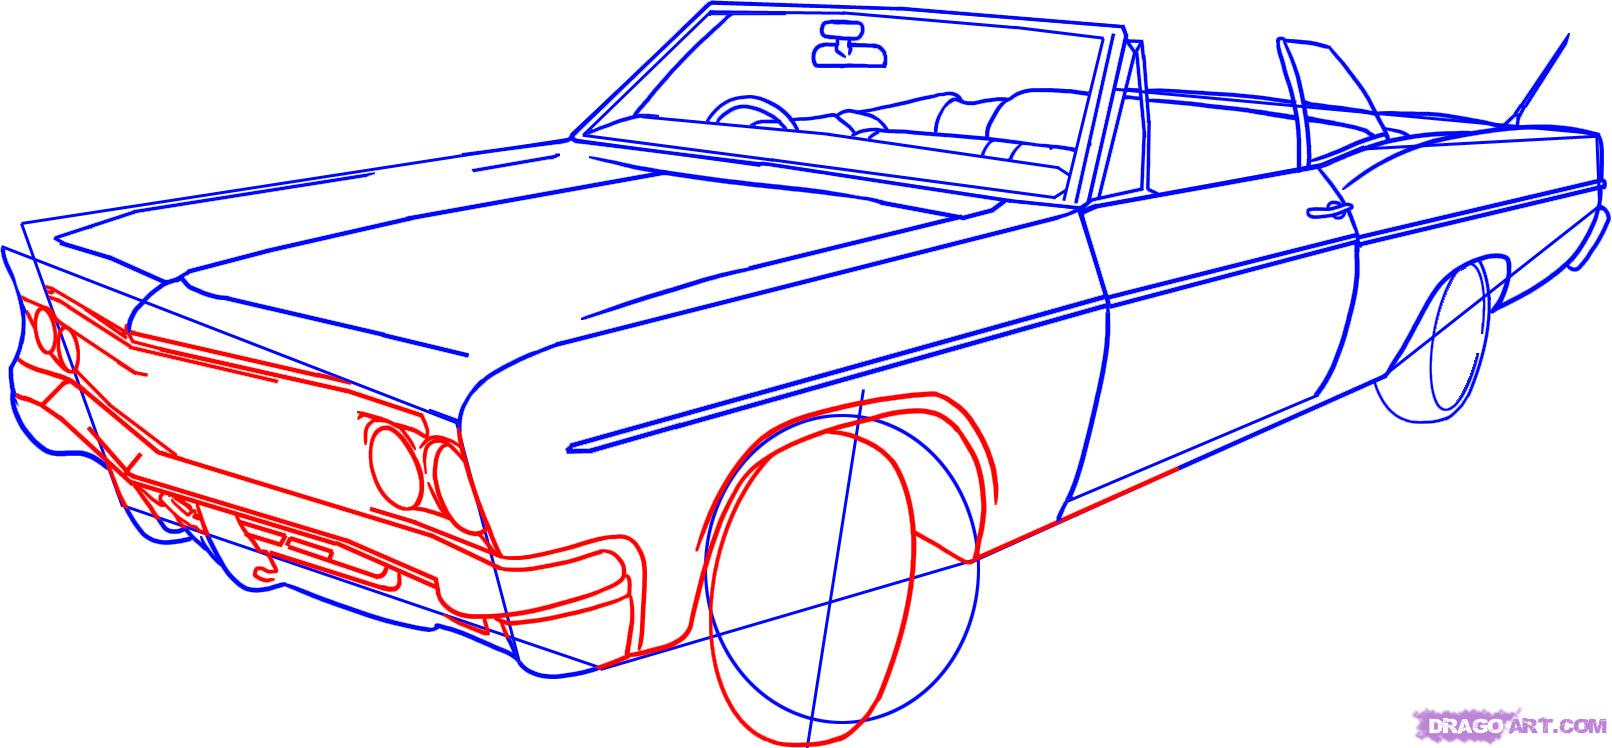 Drawn vehicle lowrider 4 How Online Draw Draw